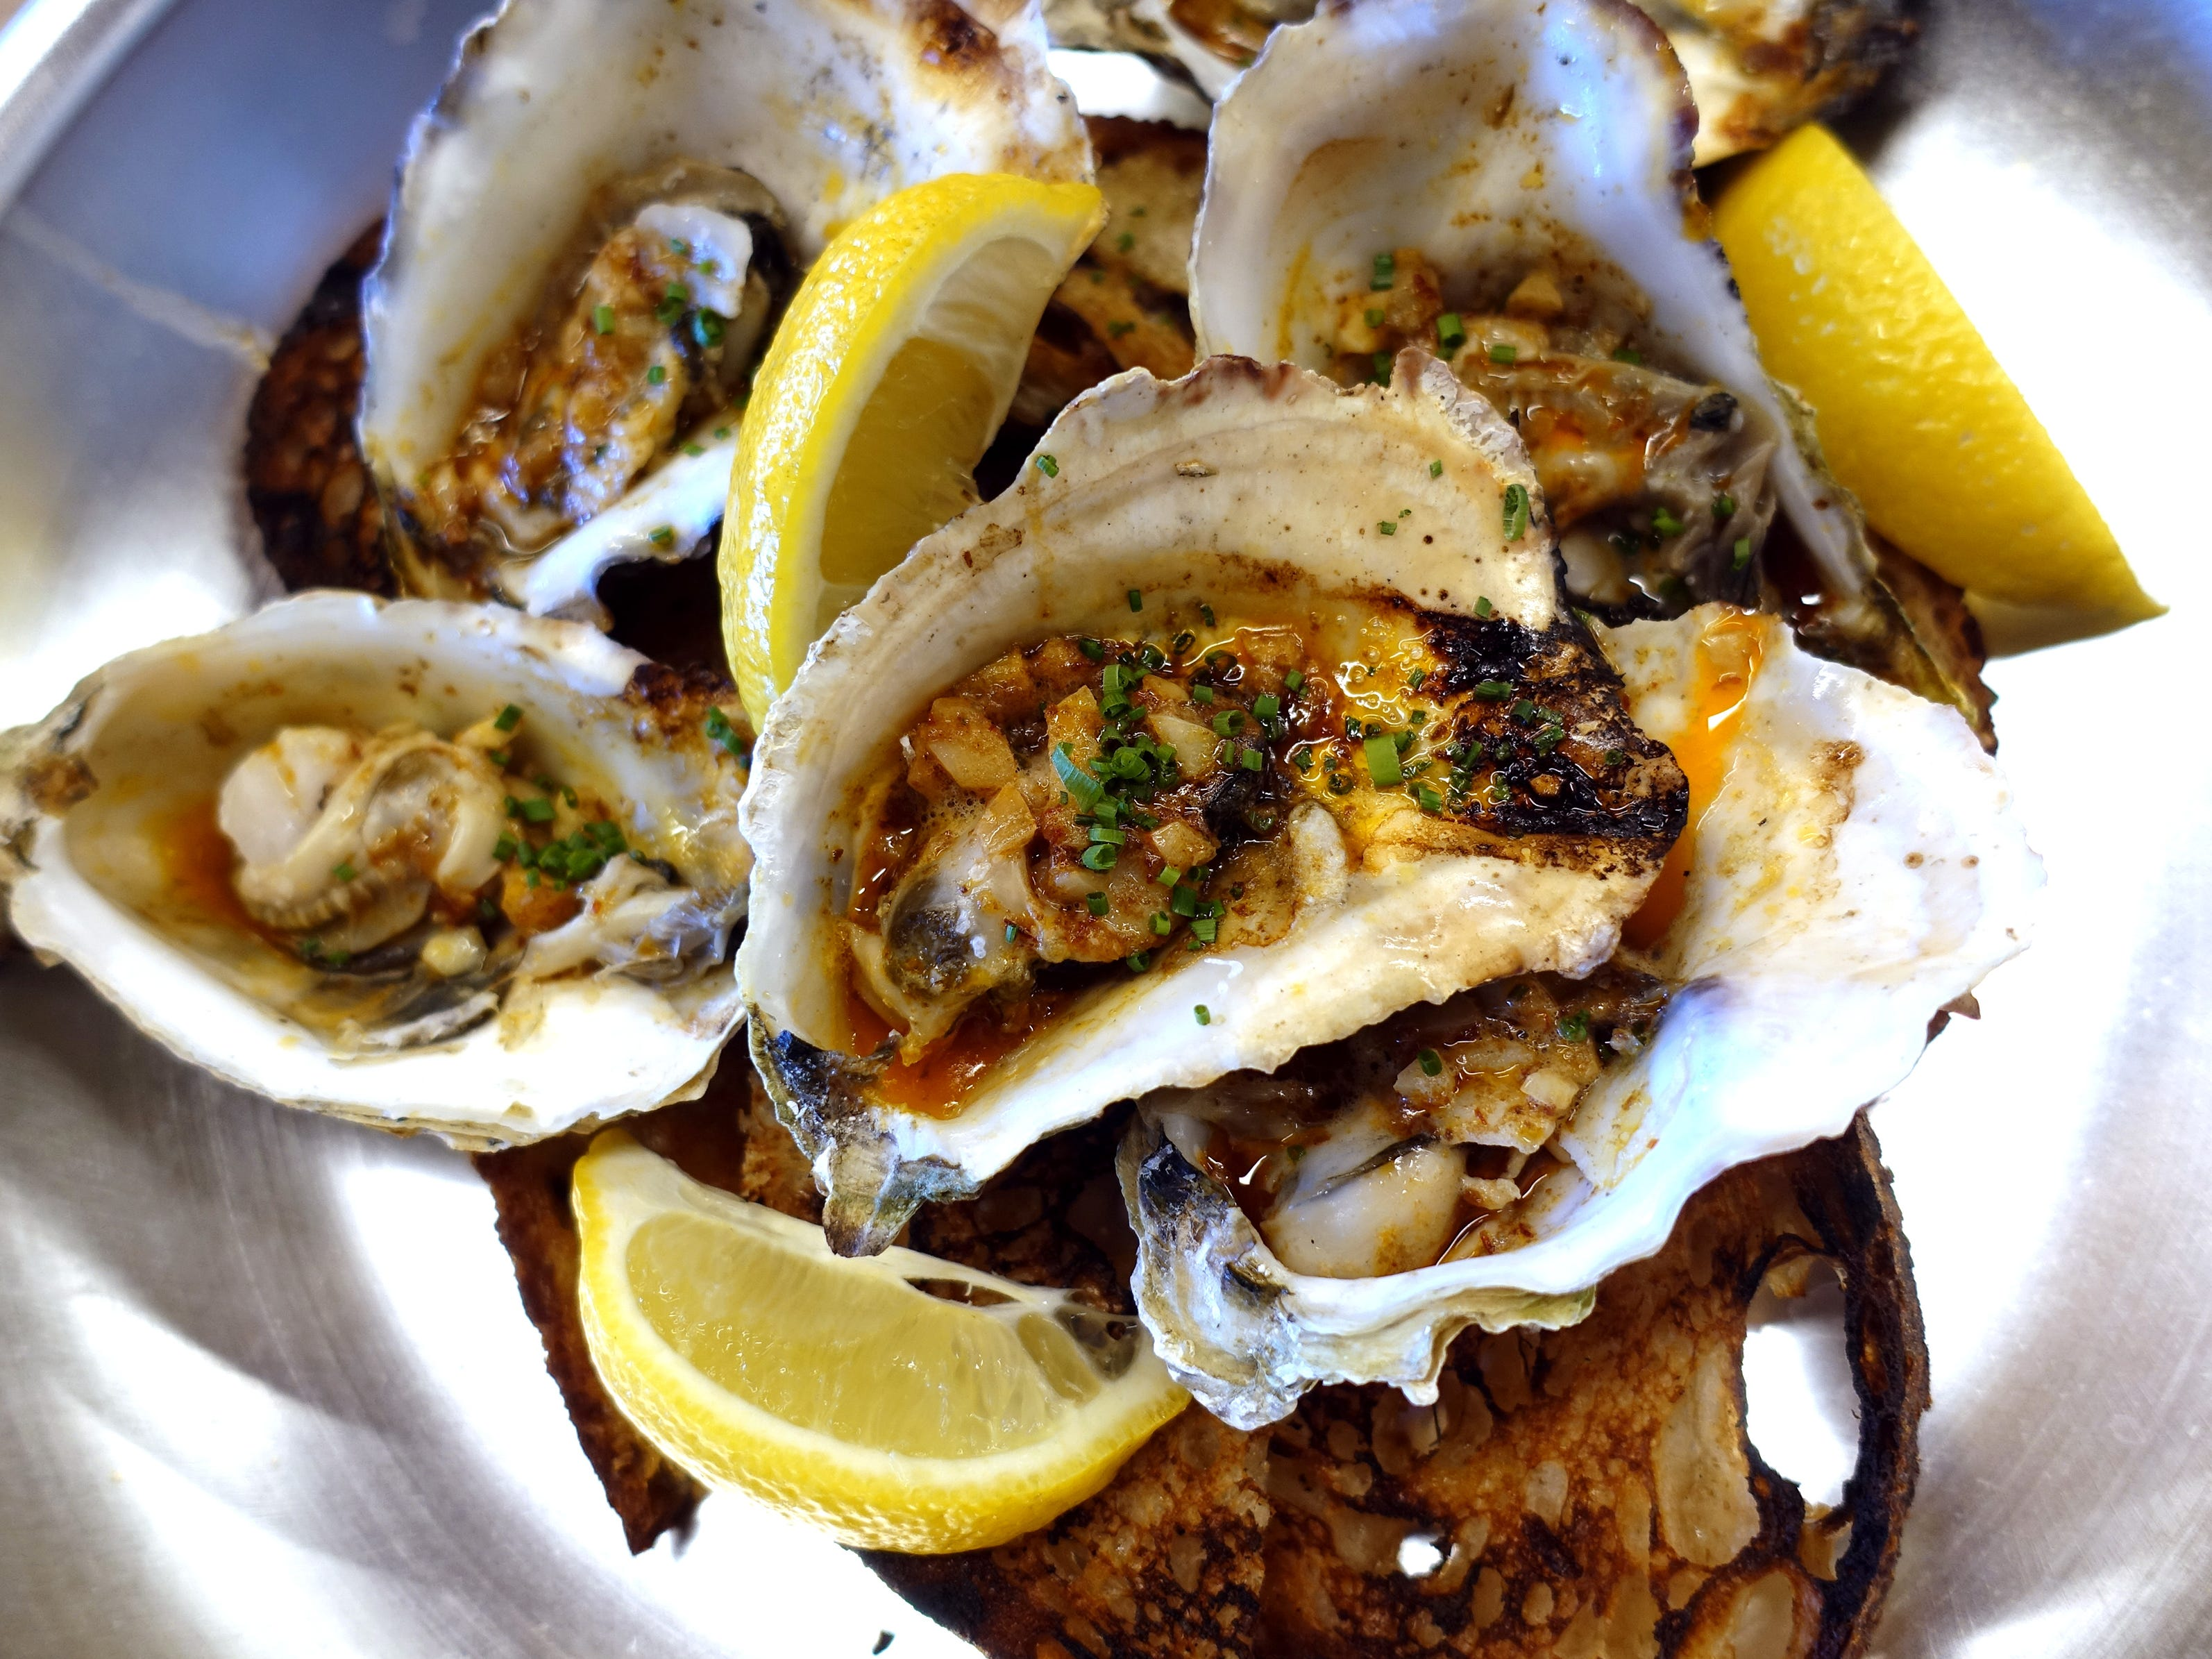 Grilled oysters with chipotle butter and grilled Noble bread at Chula Seafood Uptown in Phoenix.